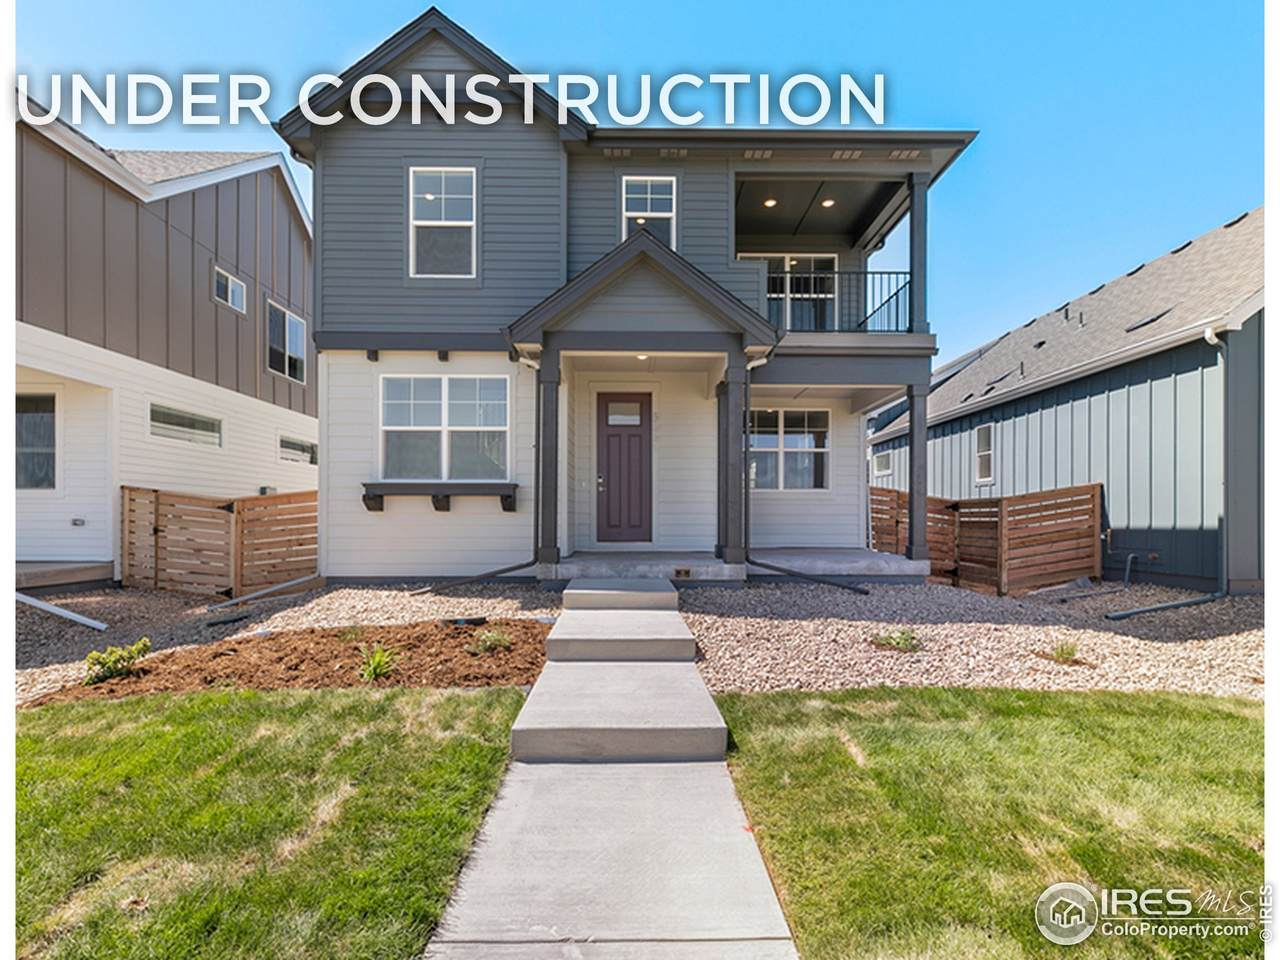 5661 Stone Fly Dr - Photo 1